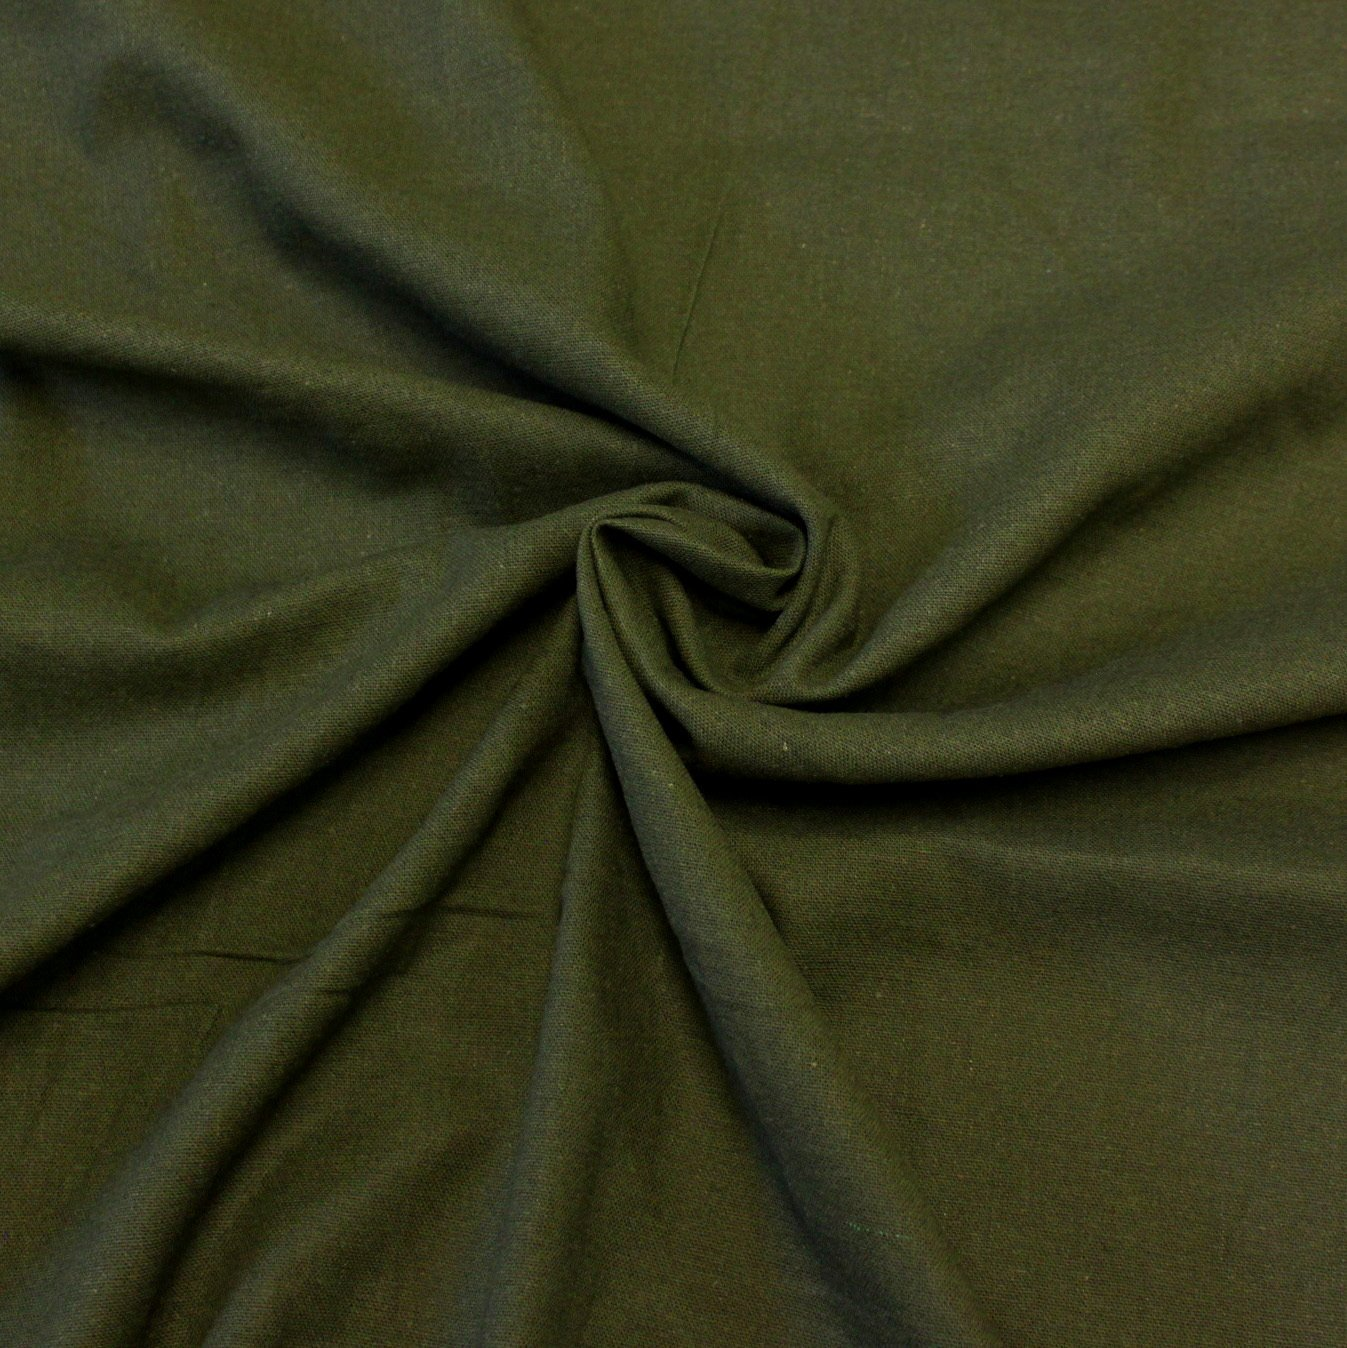 Olive Green Medium Weight Rayon Linen - Raspberry Creek Fabrics Knit Fabric